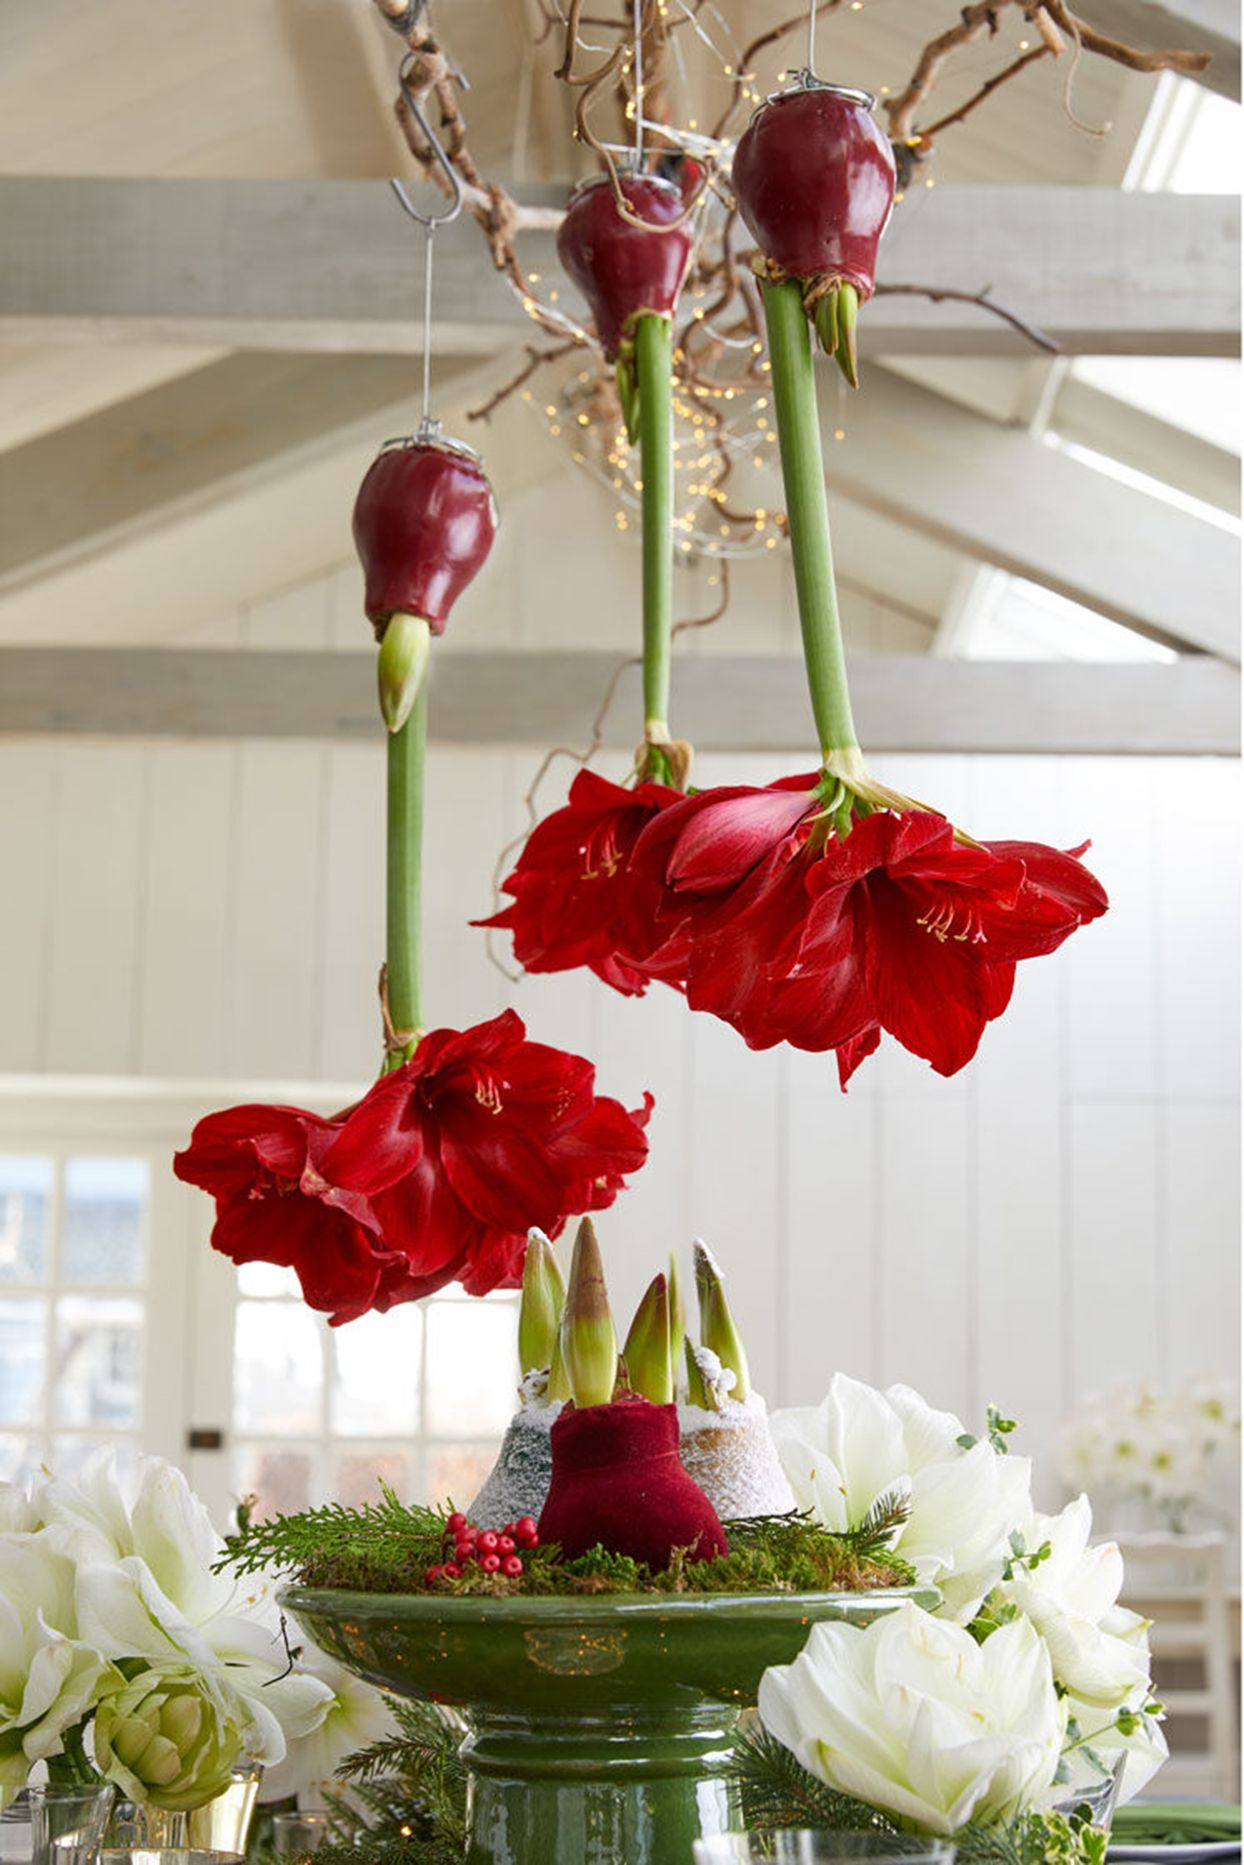 Waxed Amaryllis Bulbs Are the Easiest Flowers to Grow This